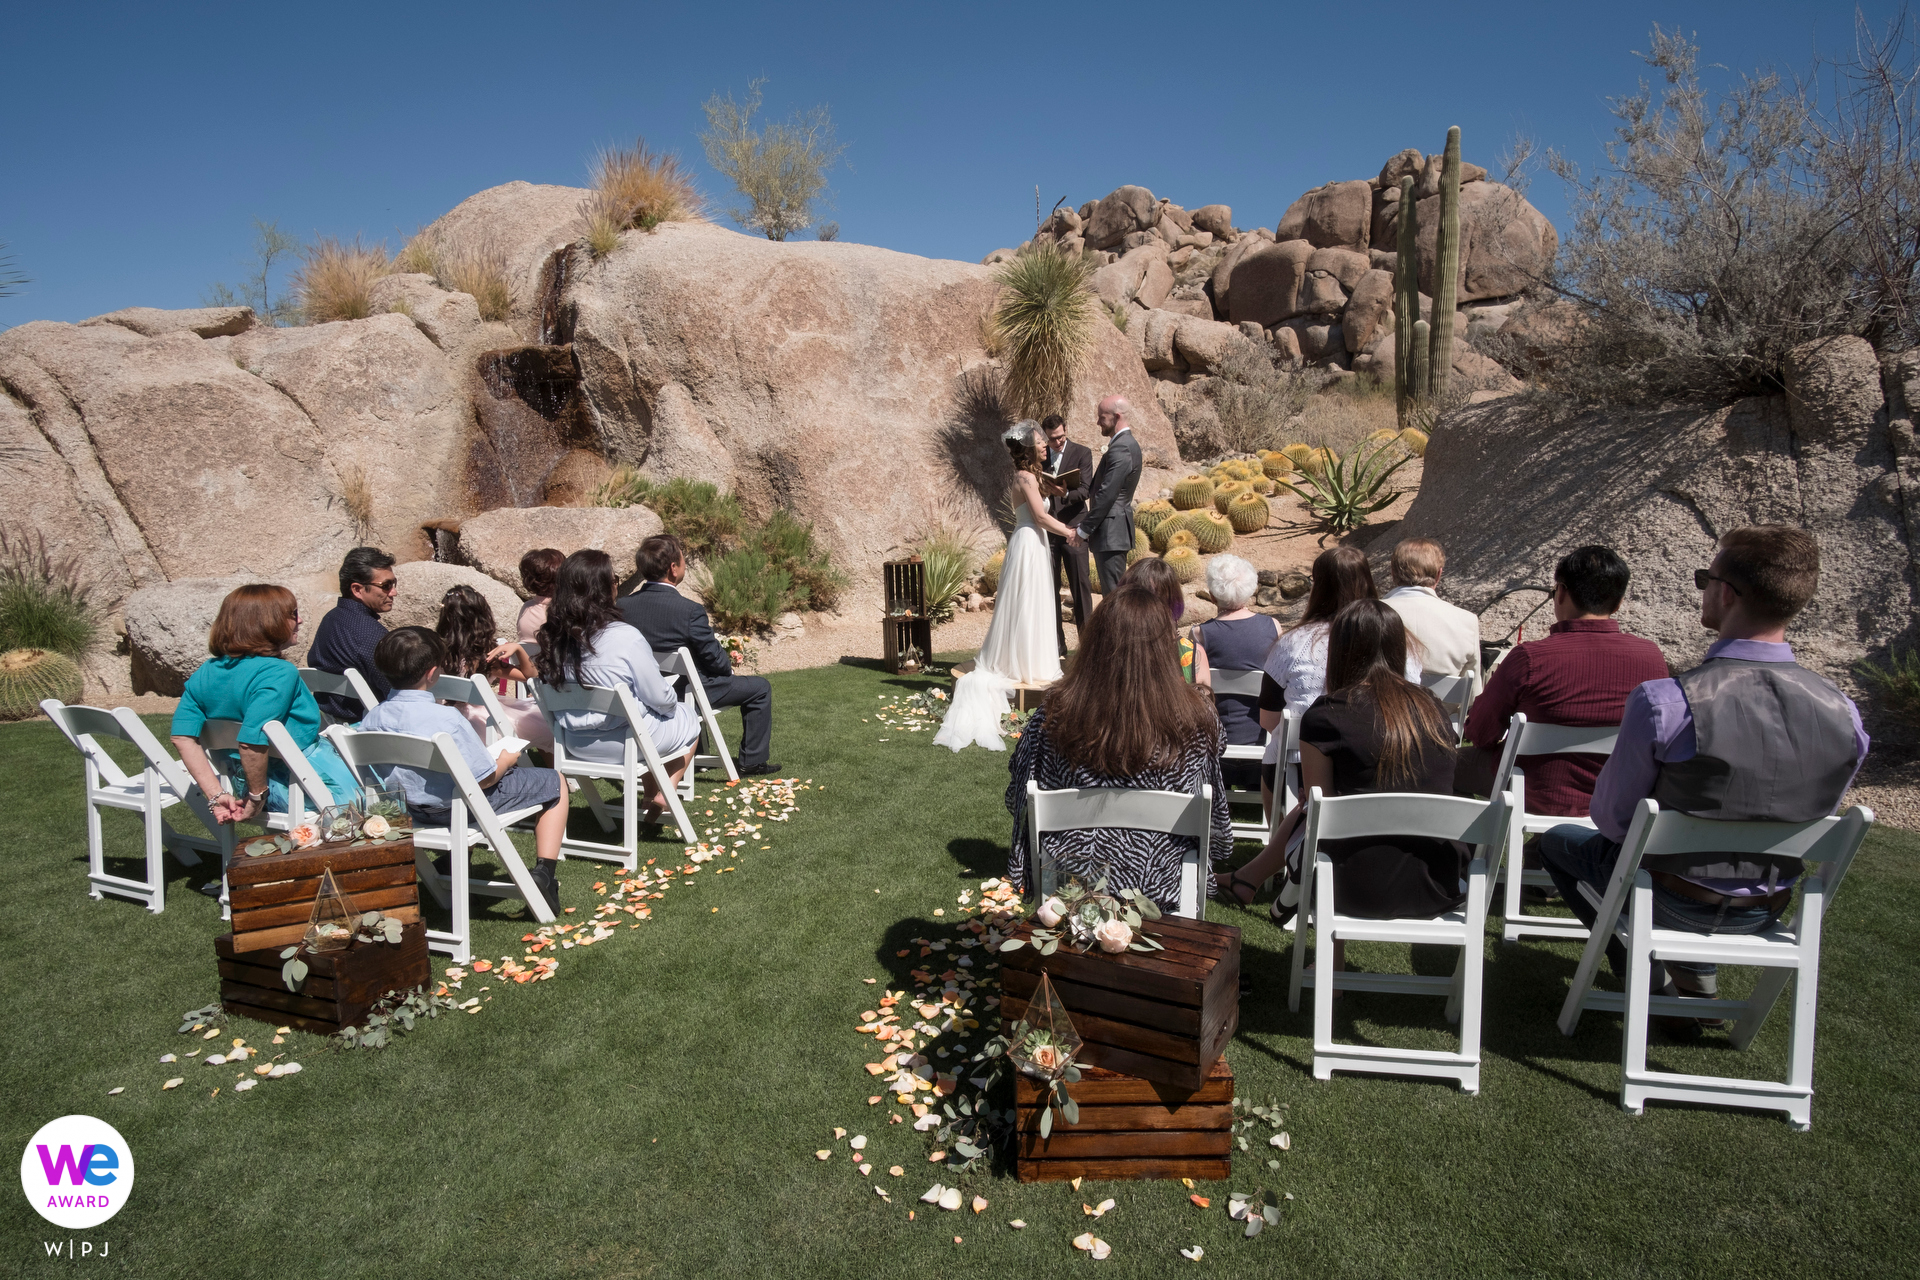 Boulders Resort and Spa, Scottsdale, Arizona Elopement Photographer | This couple chose to have a small, intimate ceremony surrounded by stunning natural rock formations and unique desert flora